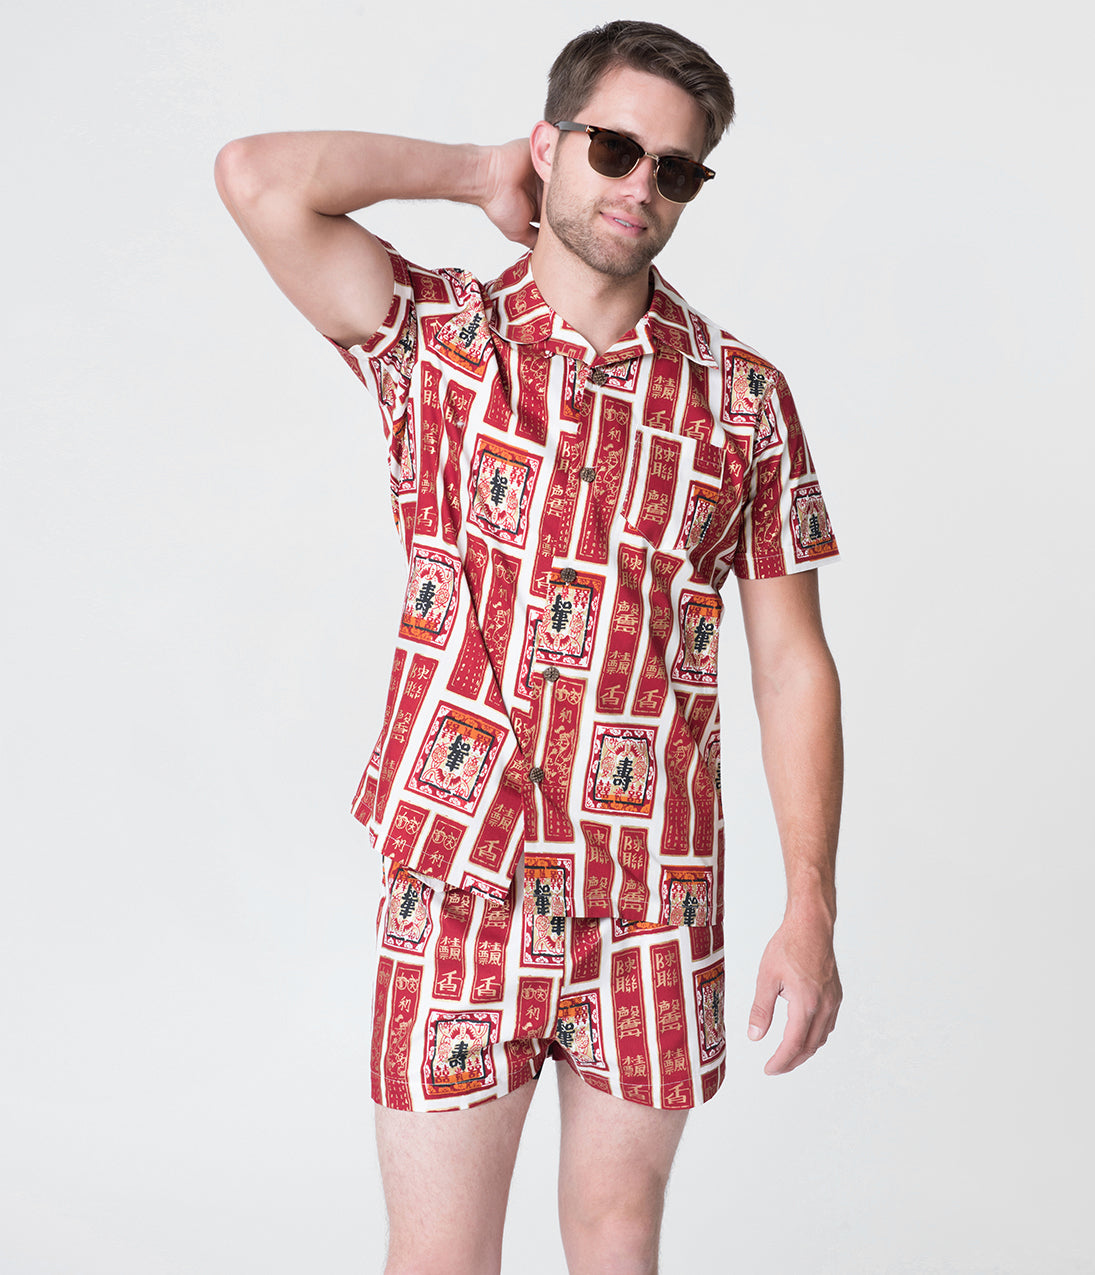 1950s Men's Shirt Styles – Dress Shirts to Casual Pullovers Alfred Shaheen Golden Scrolls Print Mens Hawaiian Cabana Set Shorts $66.00 AT vintagedancer.com